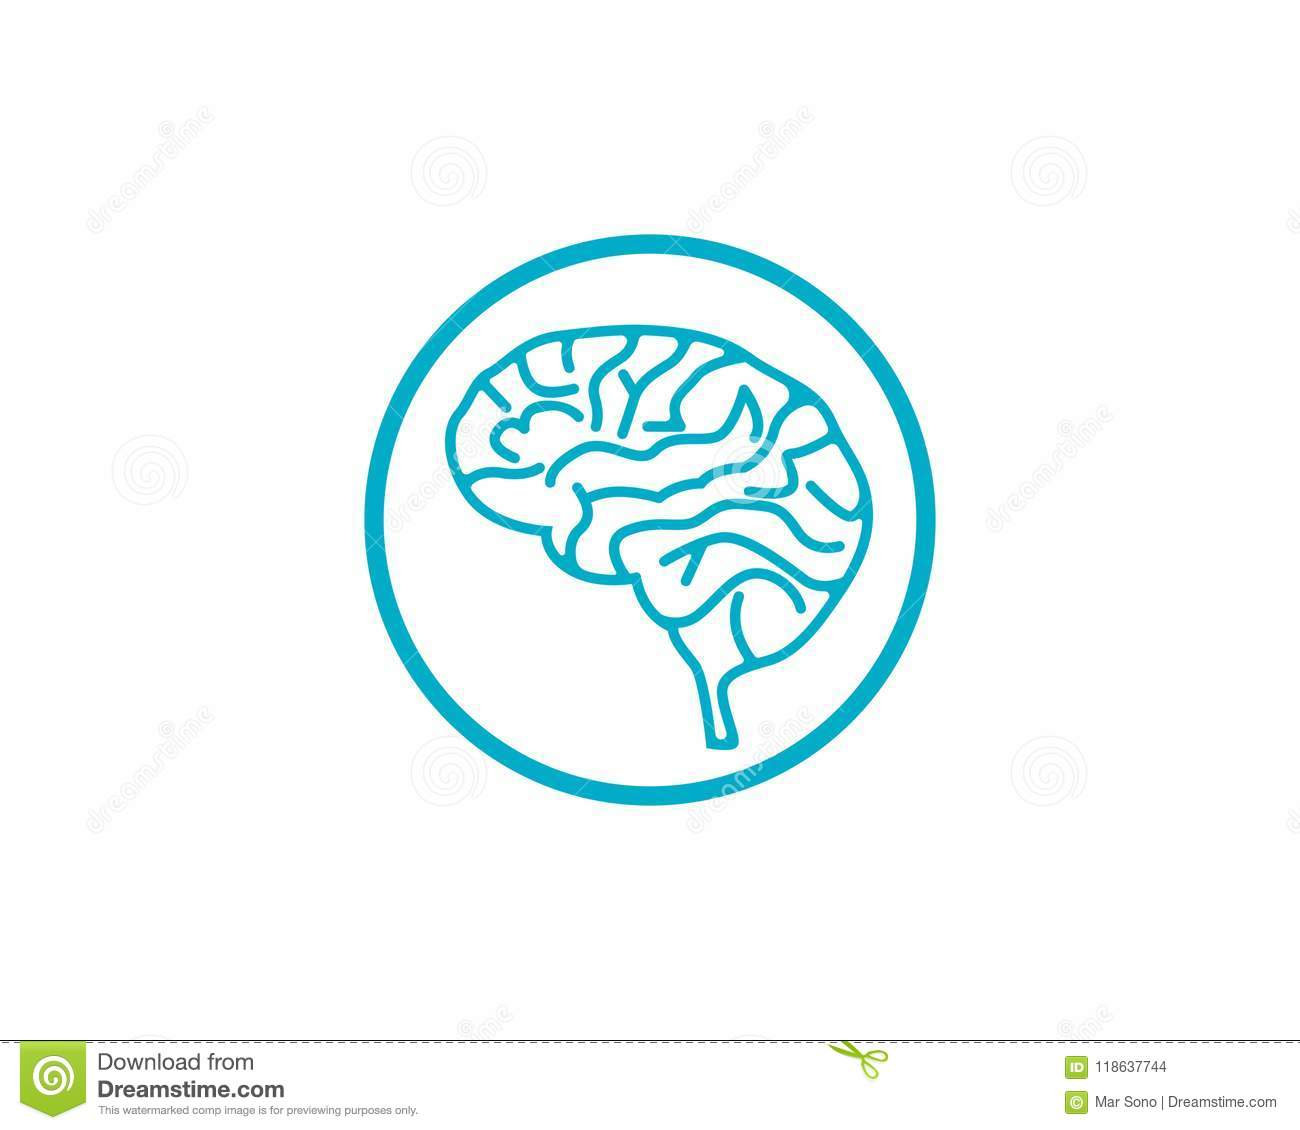 Brain Logo Template Symbols Icons App Stock Vector - Illustration of ...